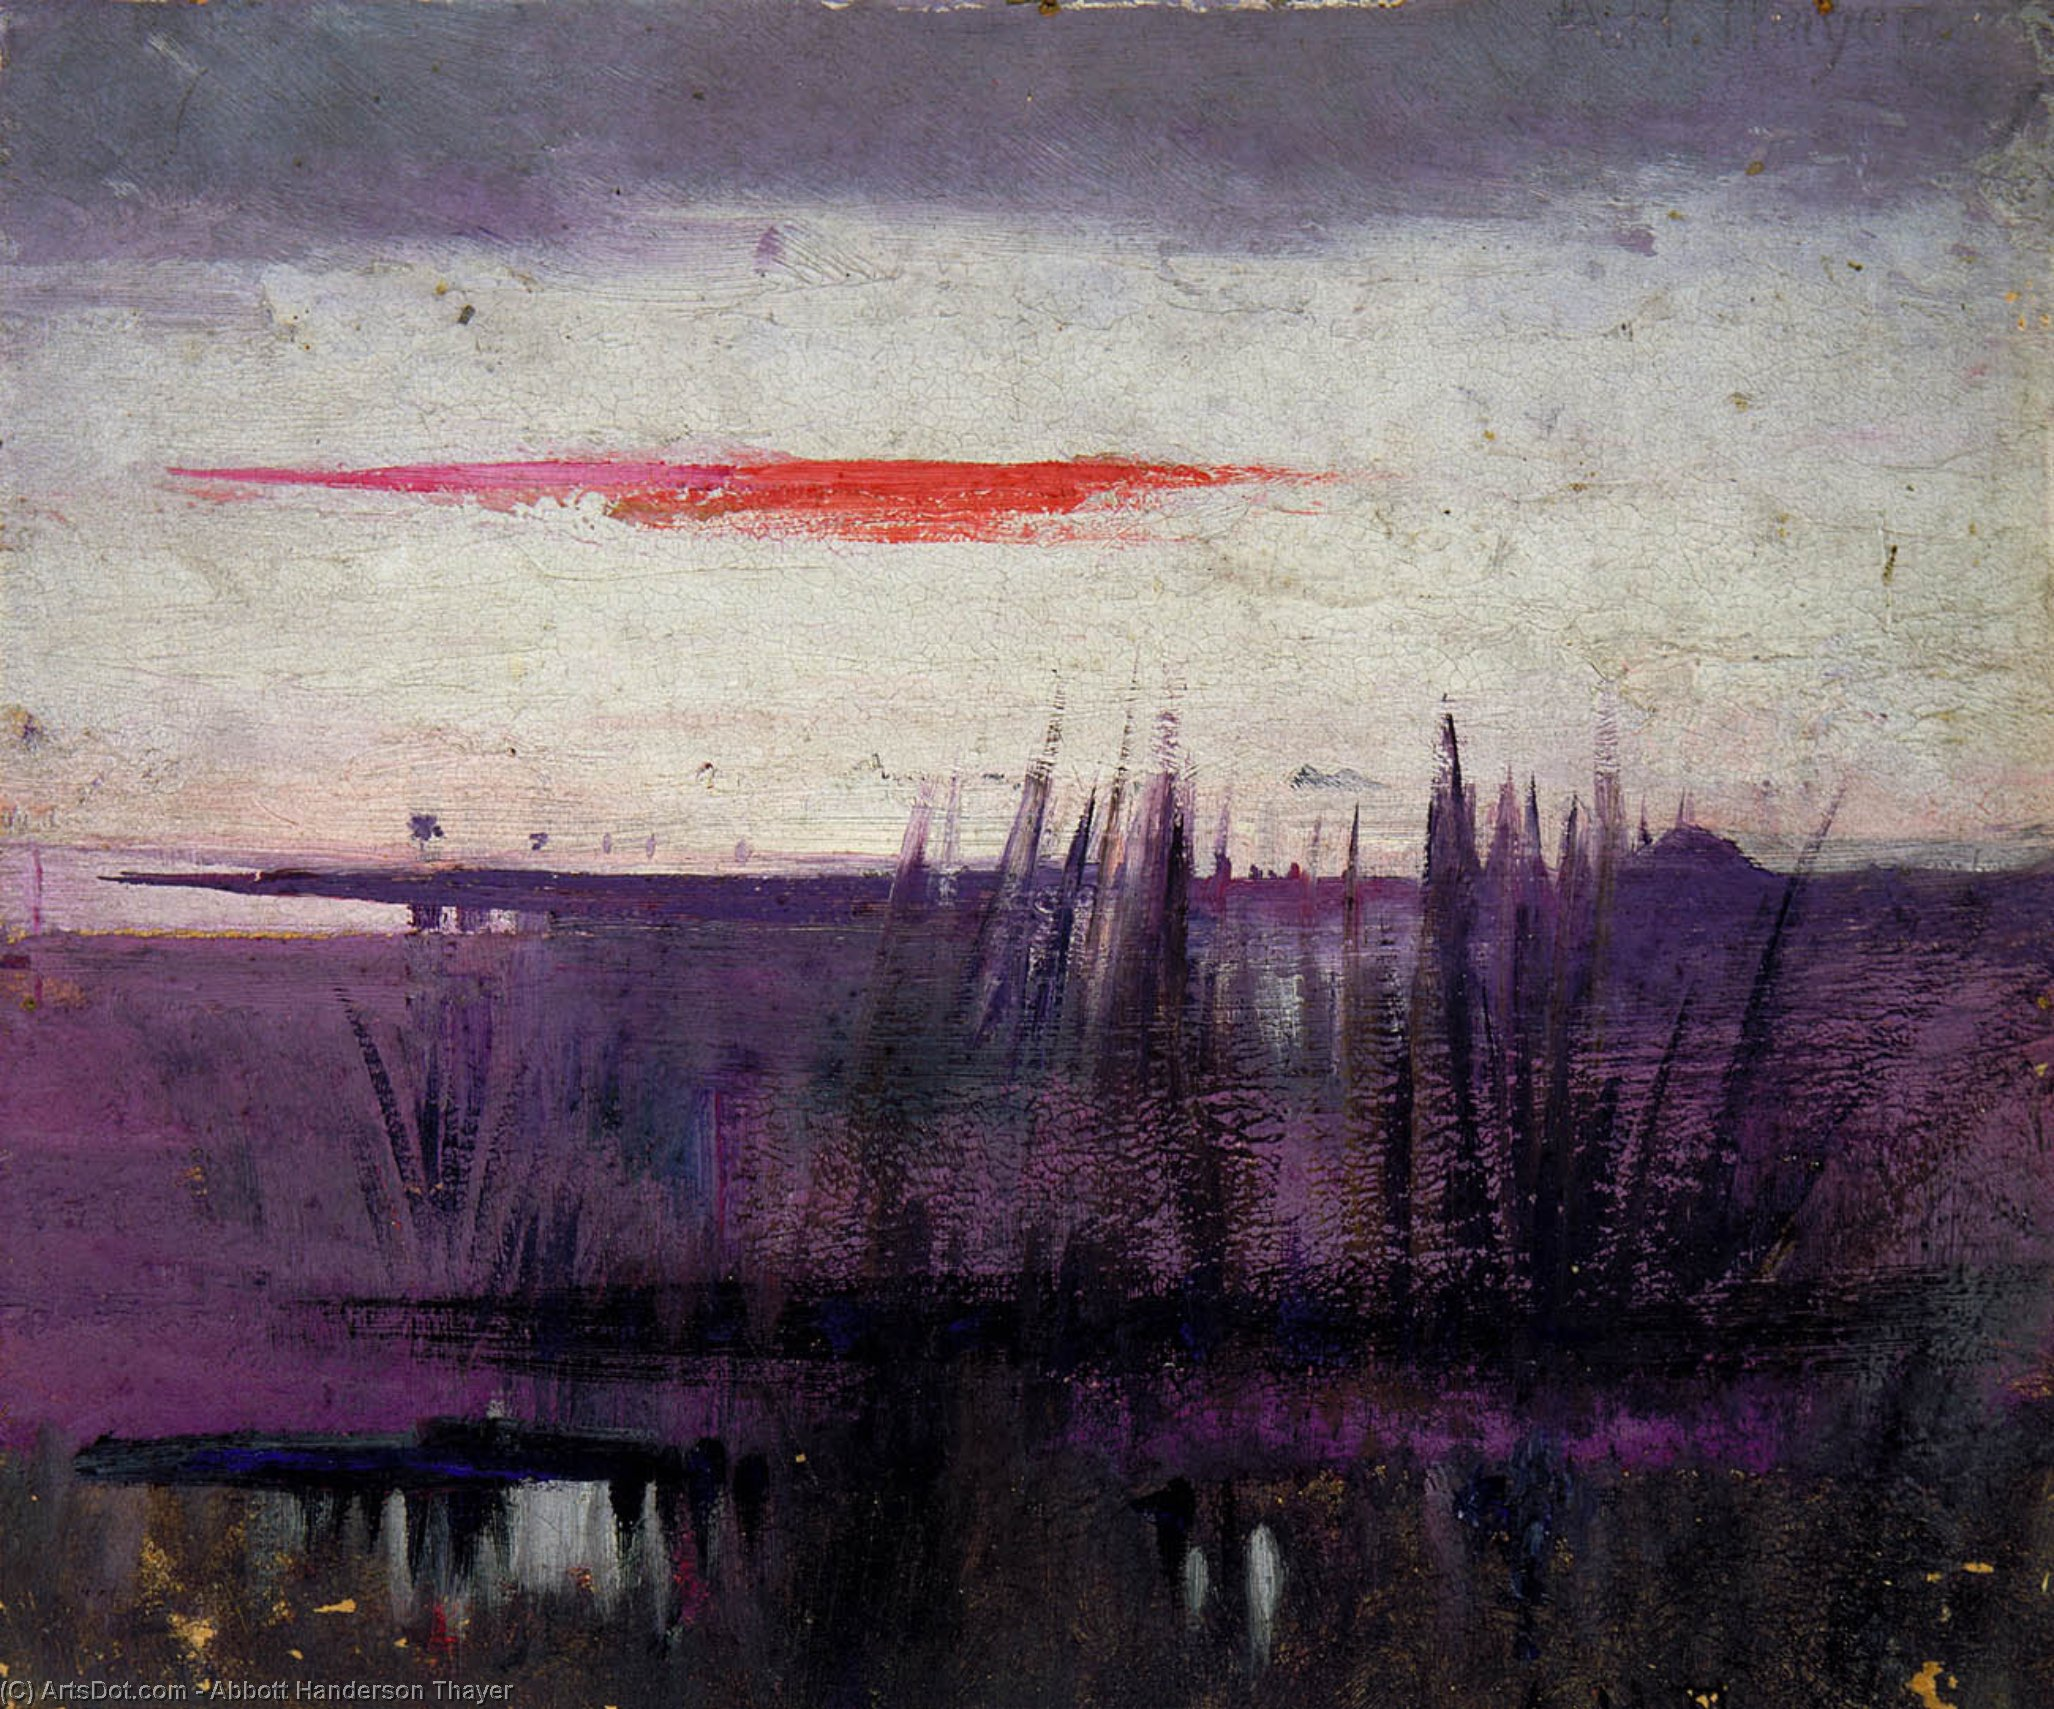 The Sky Simulated by White Flamingoes, 1905 by Abbott Handerson Thayer (1849-1921, United States)